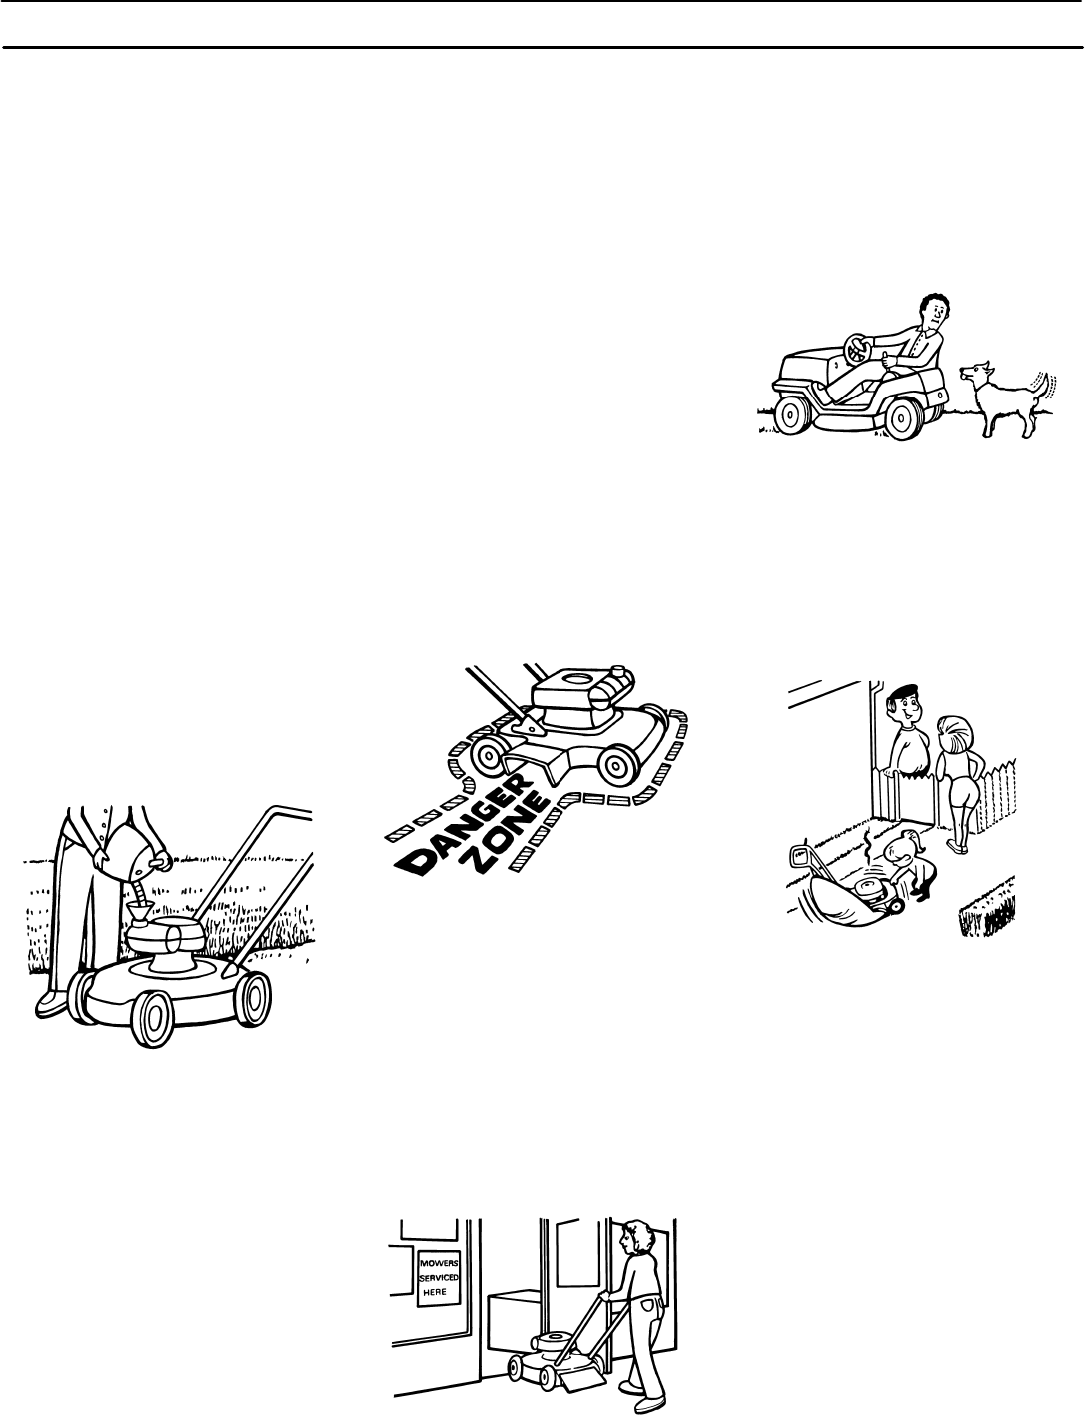 Page 6 of Murray Lawn Mower 425620x92B User Guide